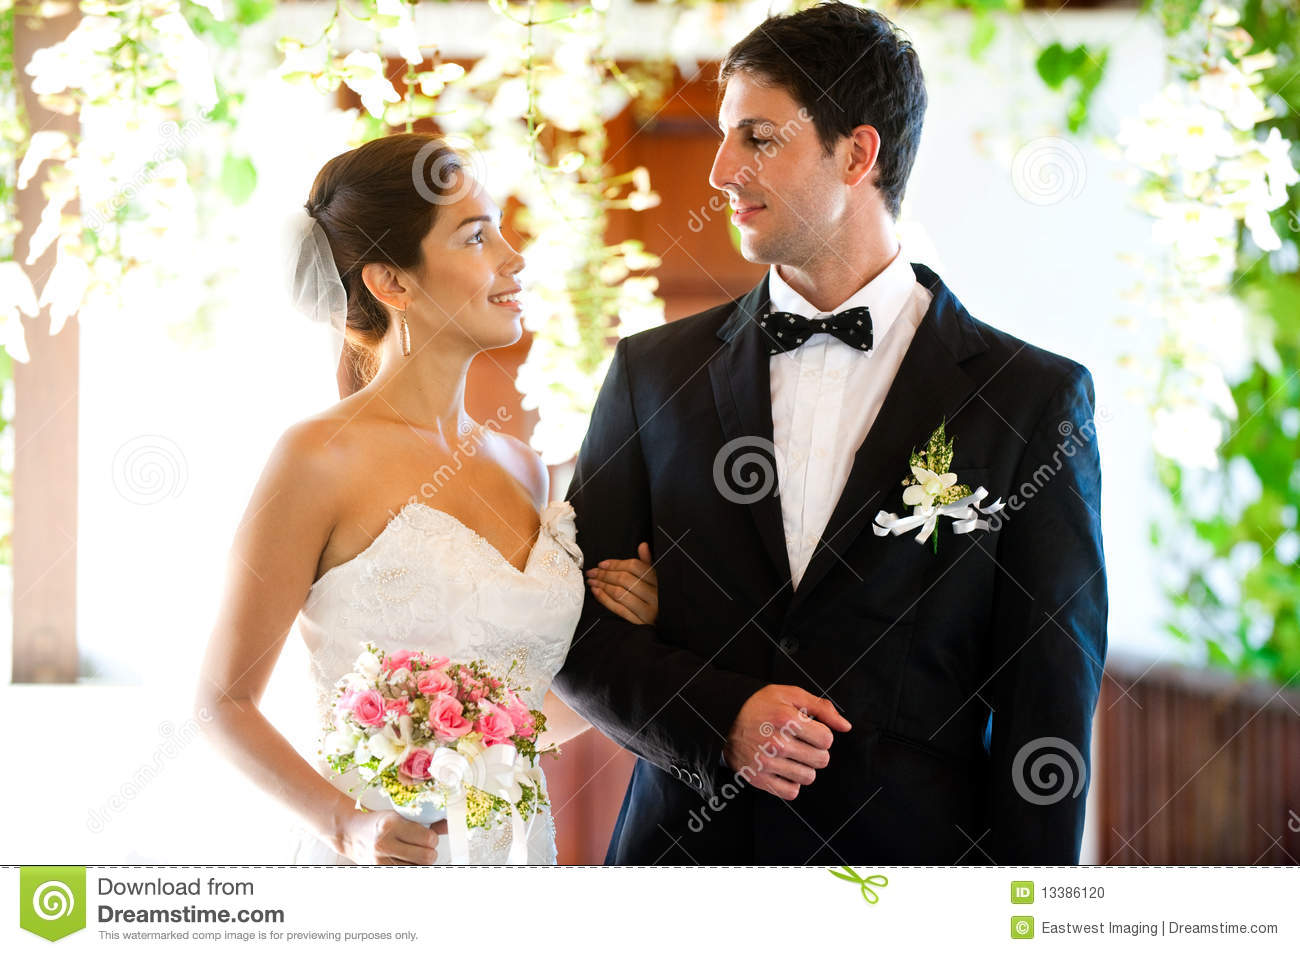 An attractive bride and groom getting married outdoors.